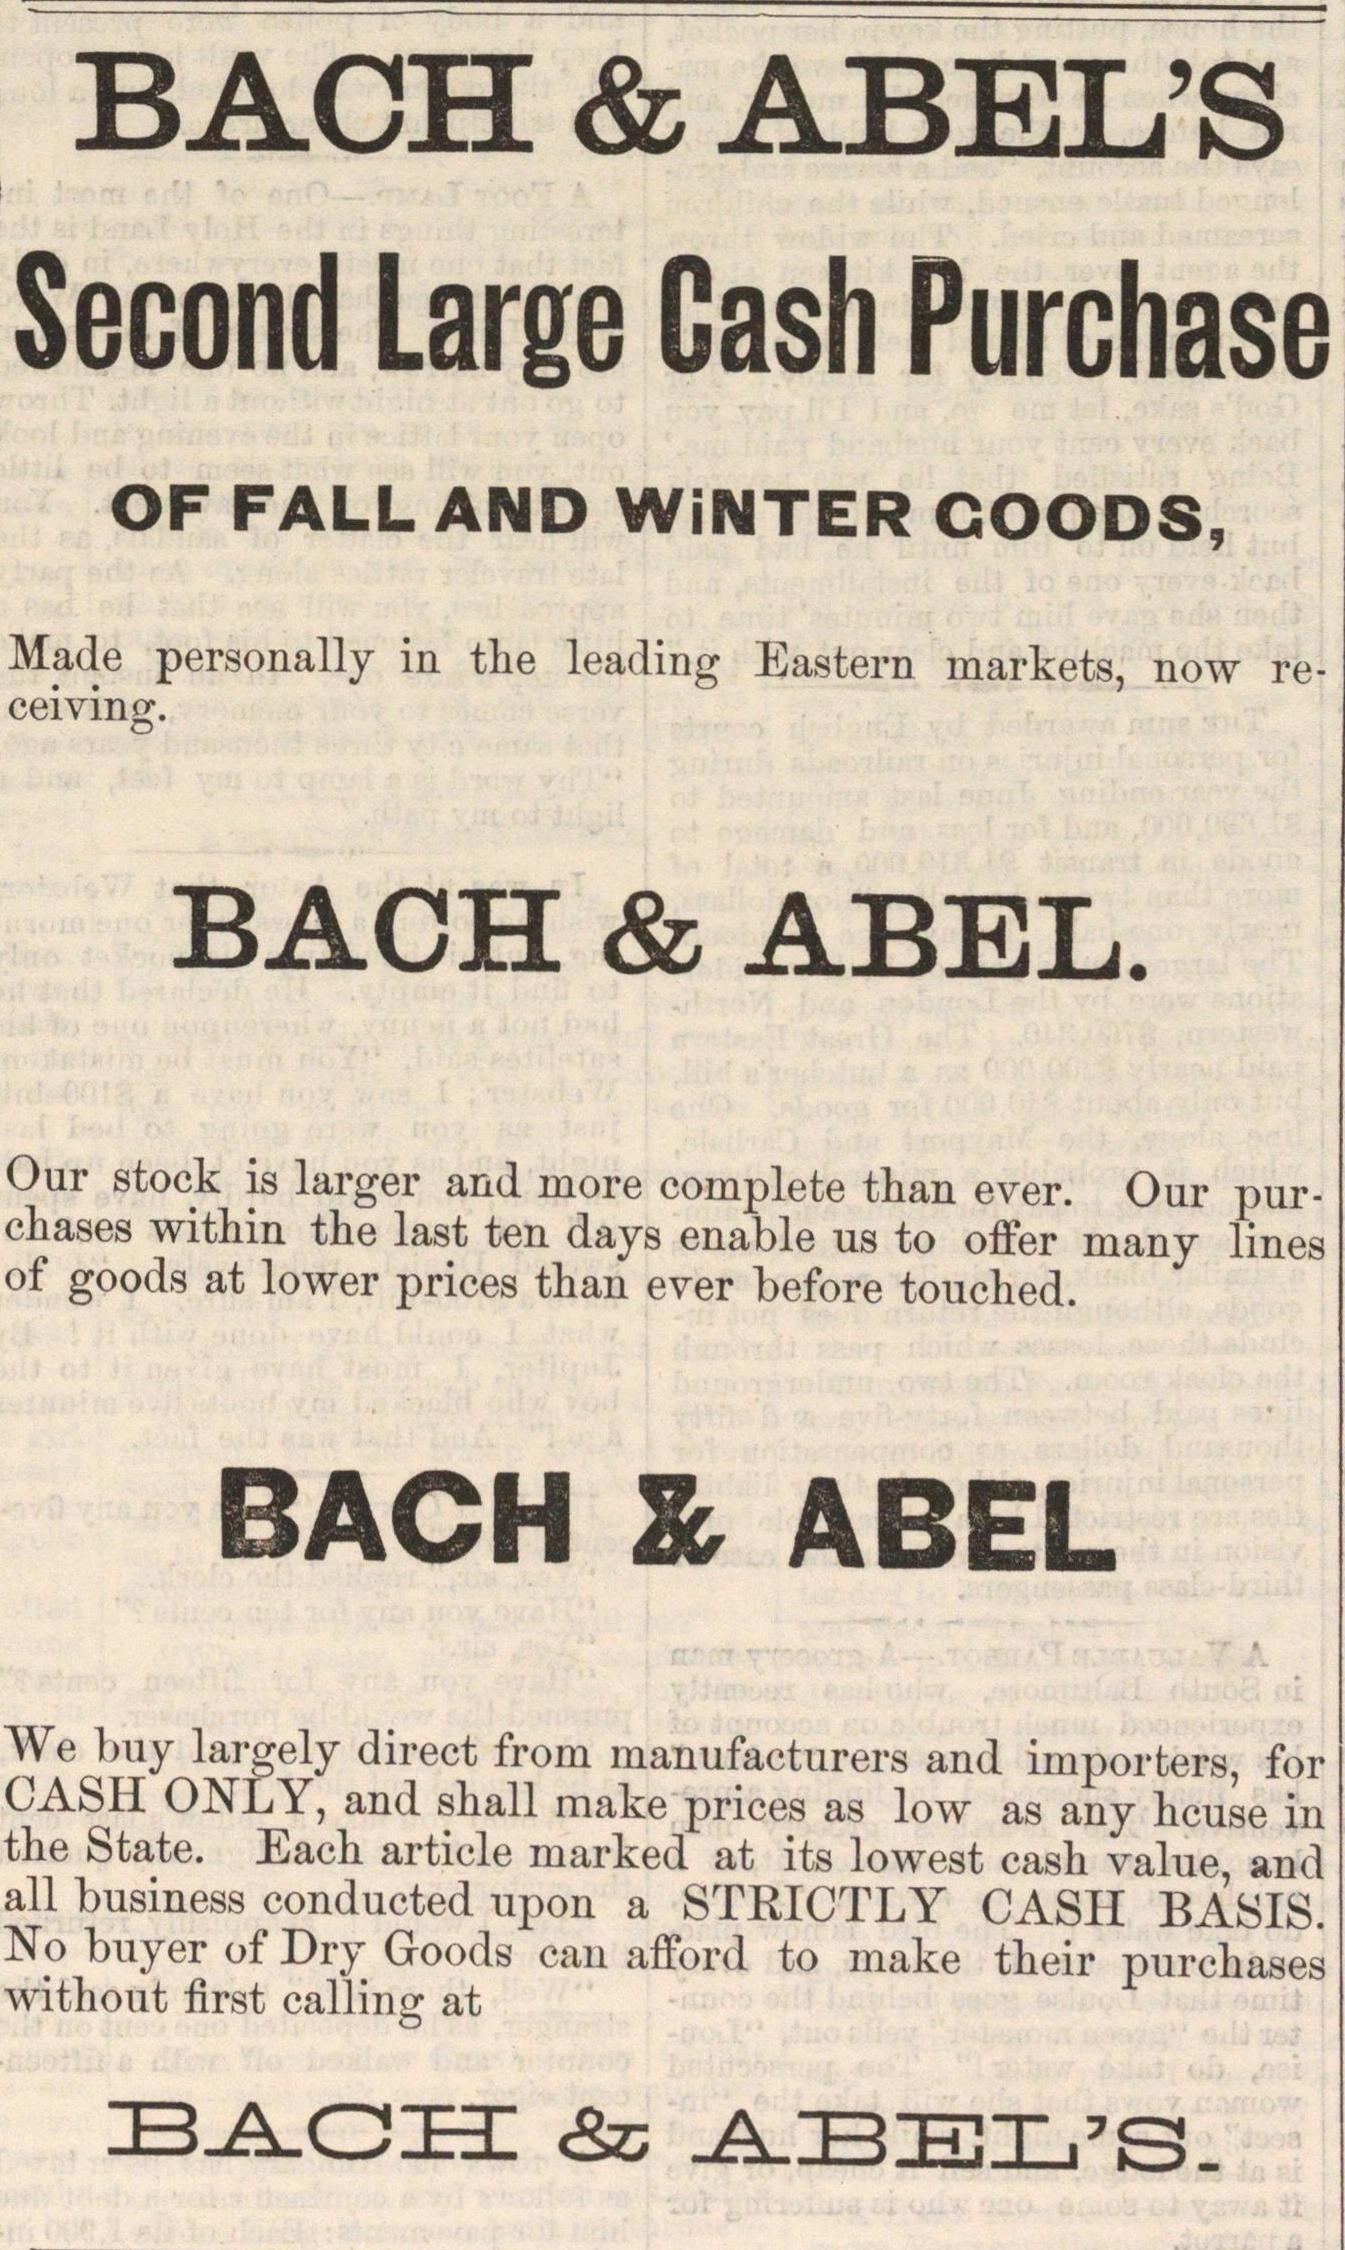 Bach & Abel's image